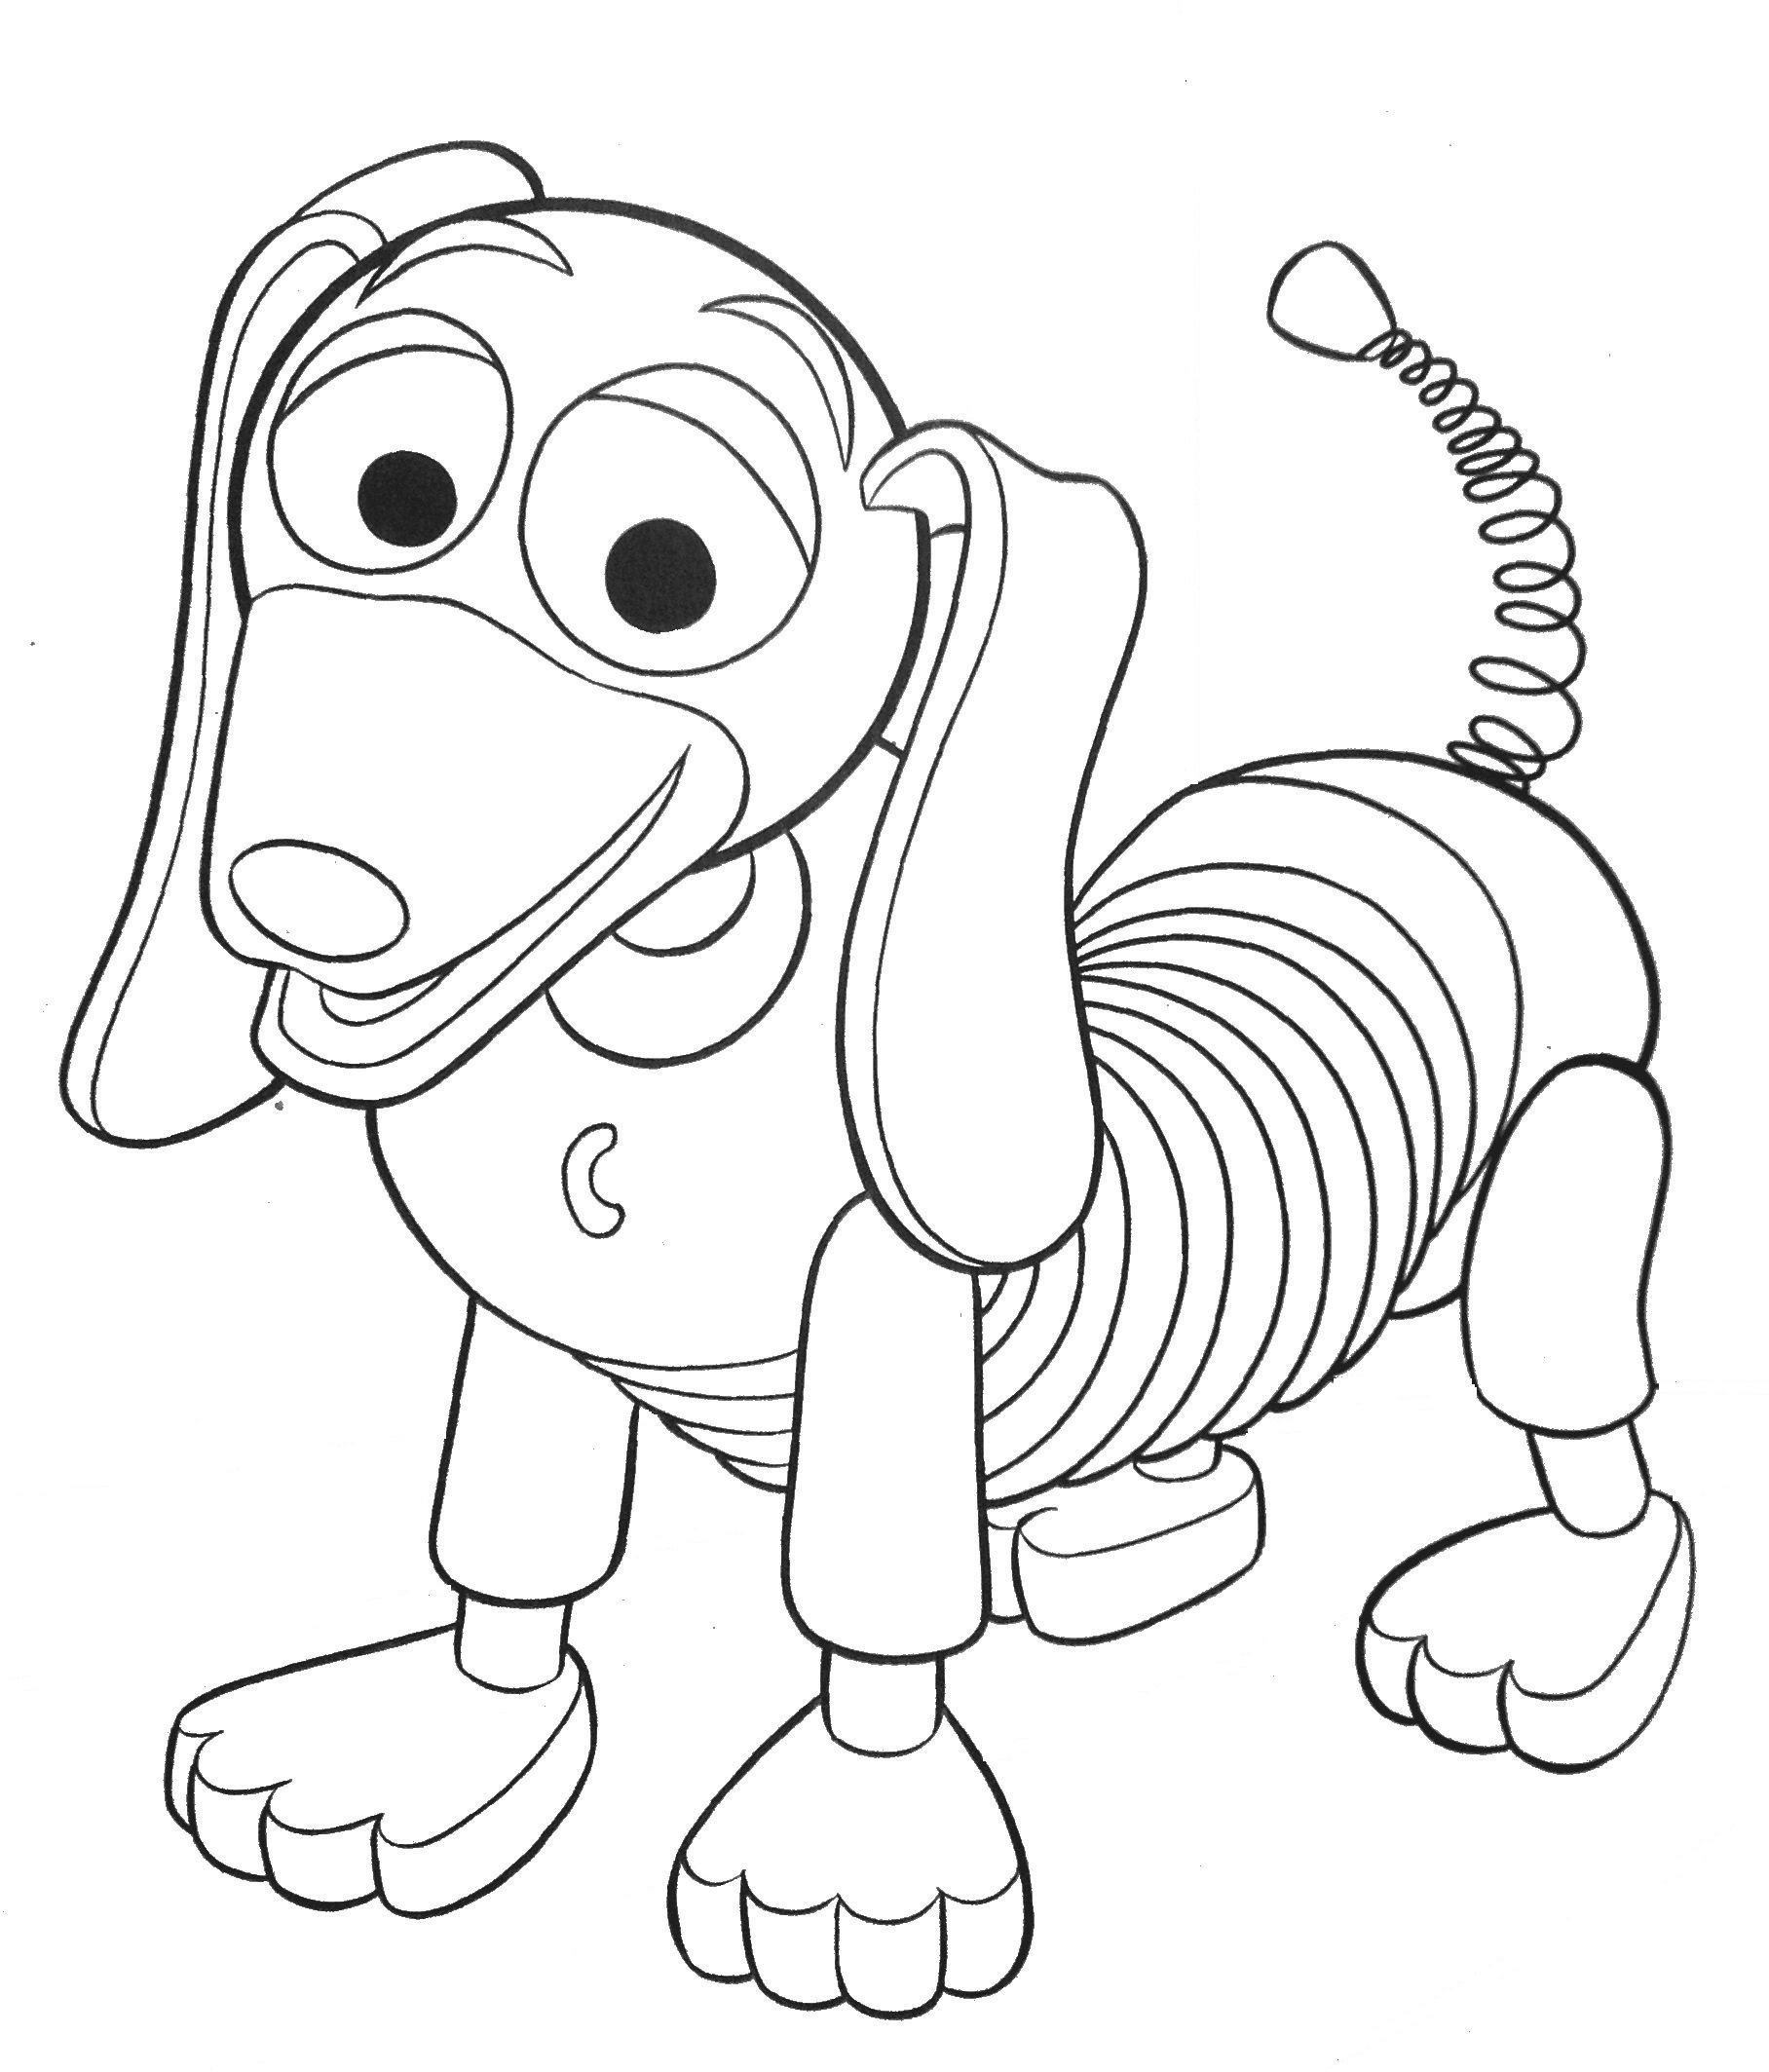 Toy Story Coloring Pages Toy Story Slinky Dog Coloring Pages